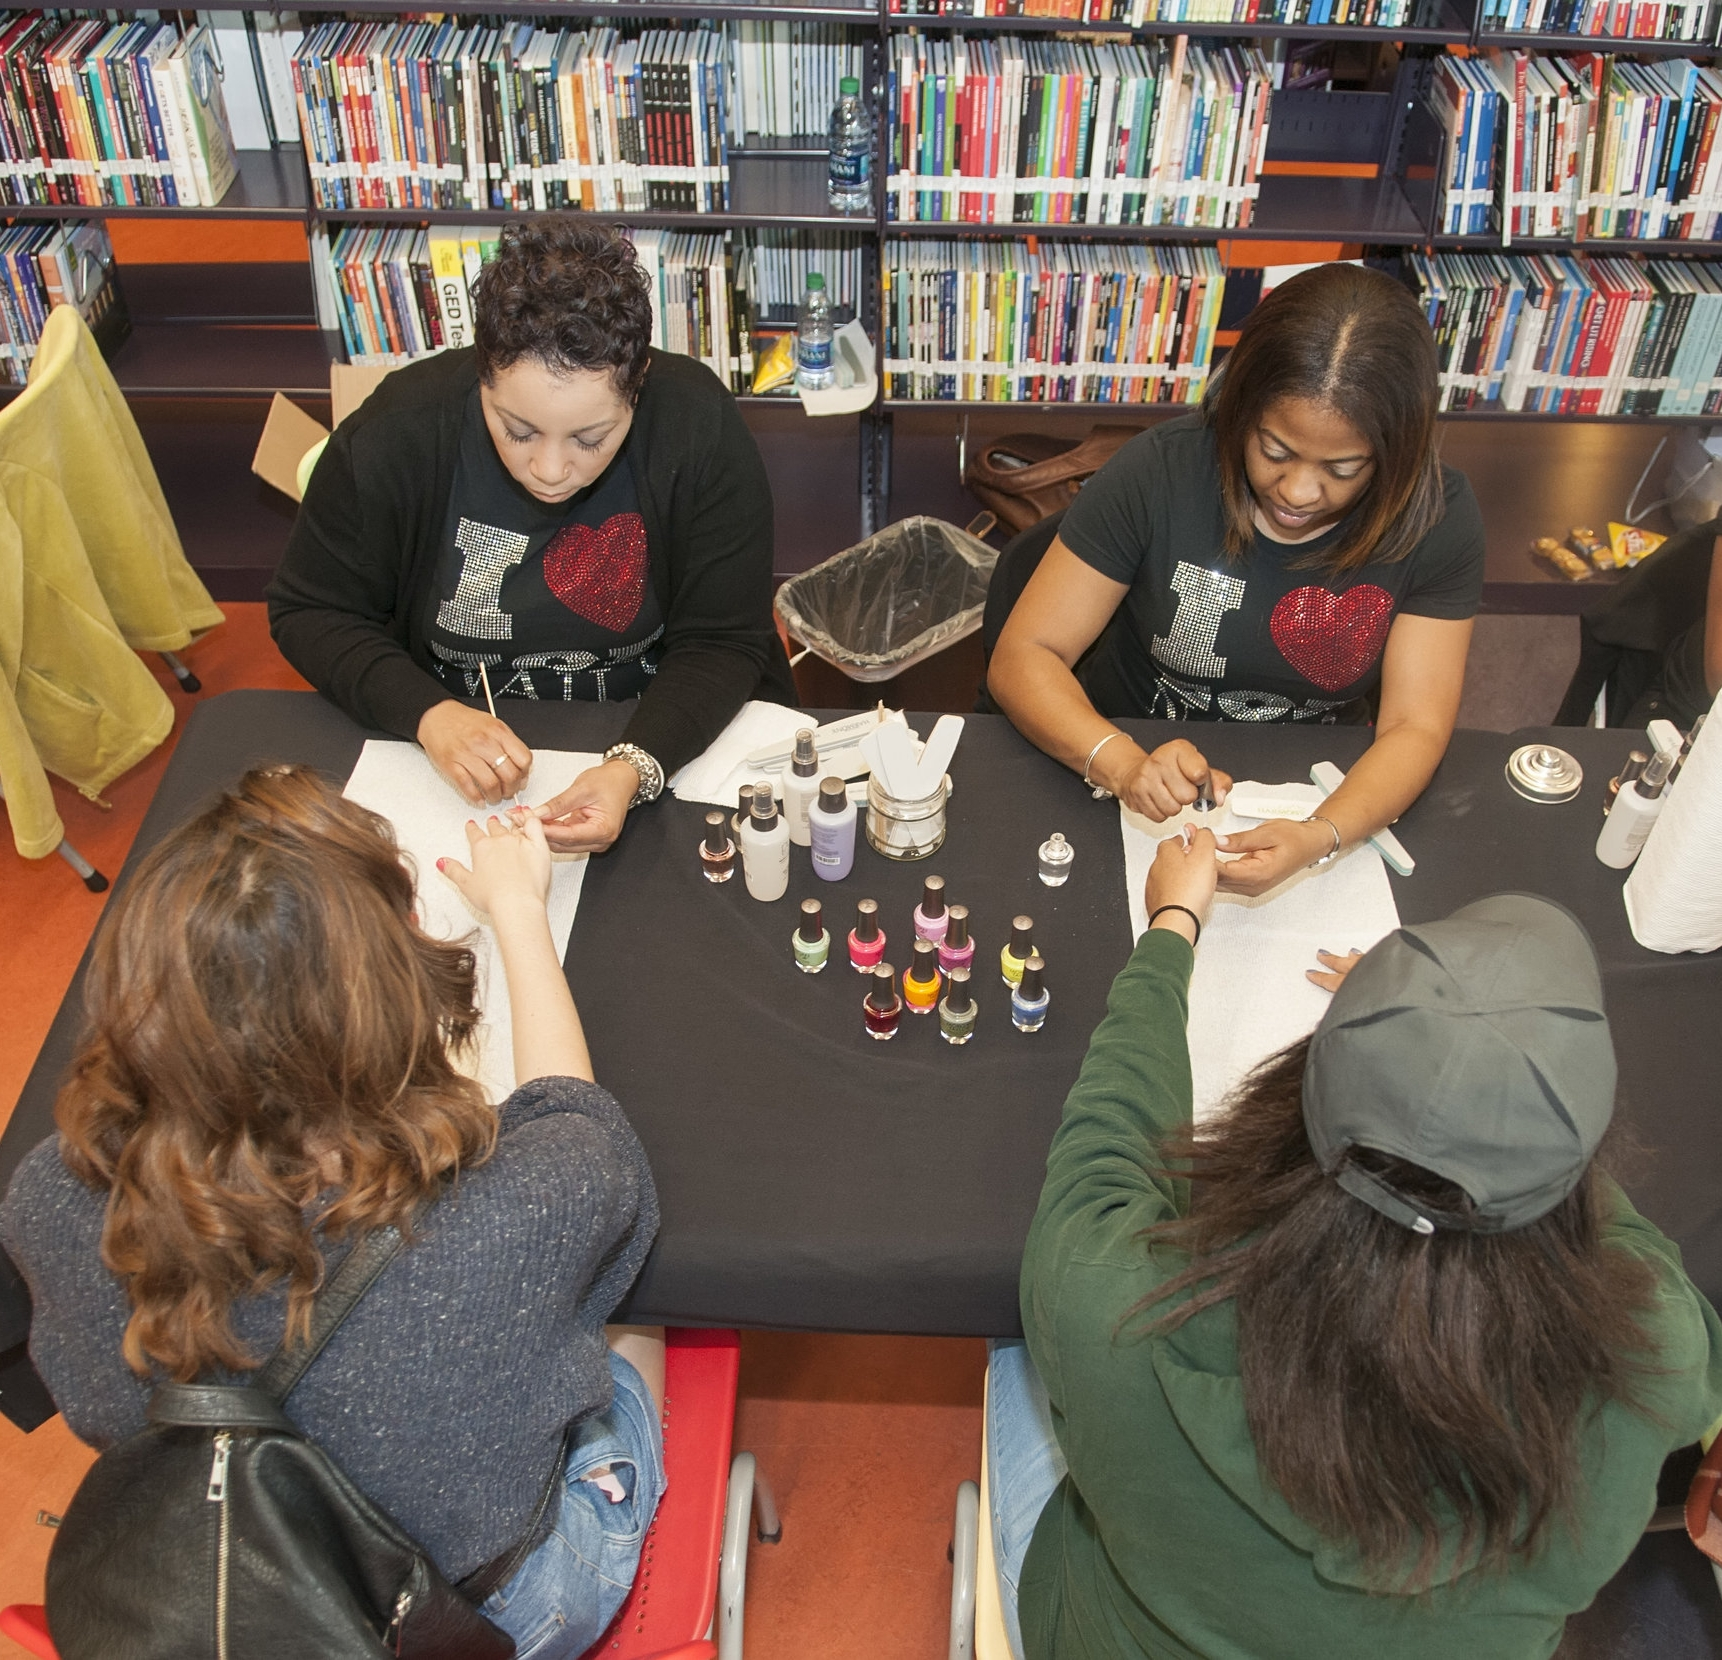 Over 100 teen girls received nail services from Zoe after they attended etiquette classes and picked out a prom dress, shoes and accessories during Girl Talk's Prom Project!